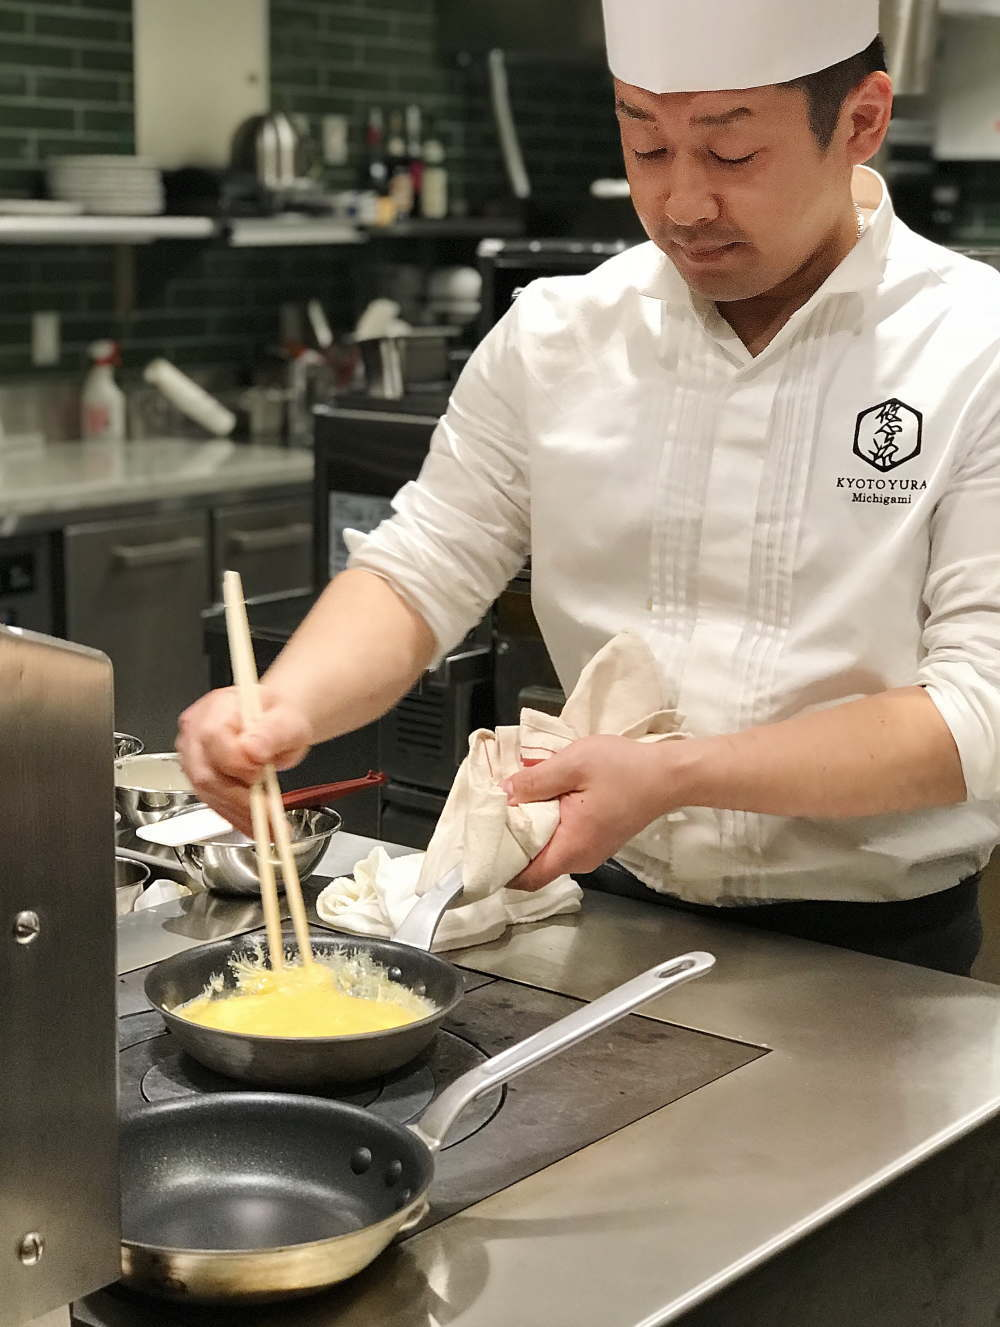 FIFTY FOURTH STATION GRILL 朝ごはん調理の様子